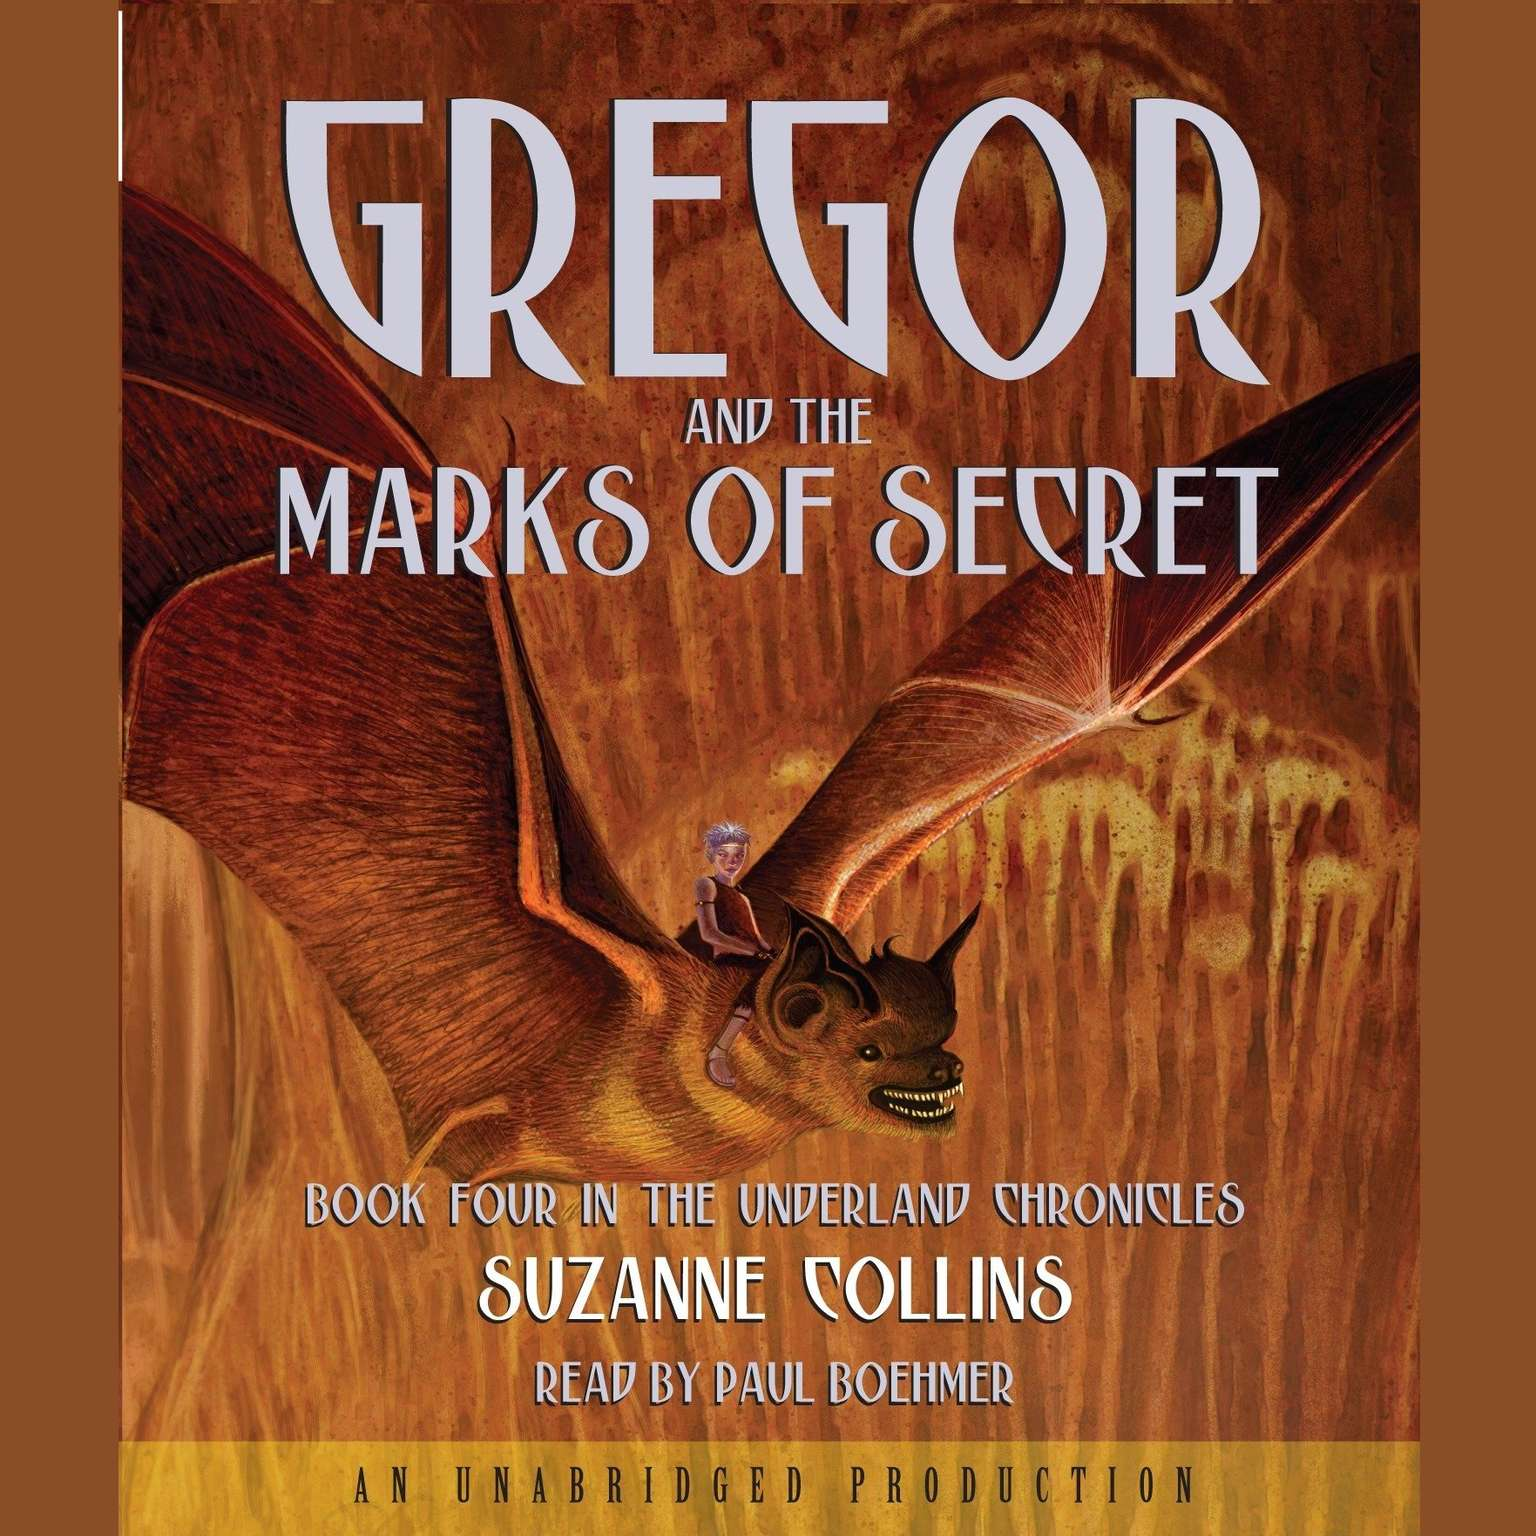 Printable The Underland Chronicles Book Four: Gregor and the Marks of Secret Audiobook Cover Art